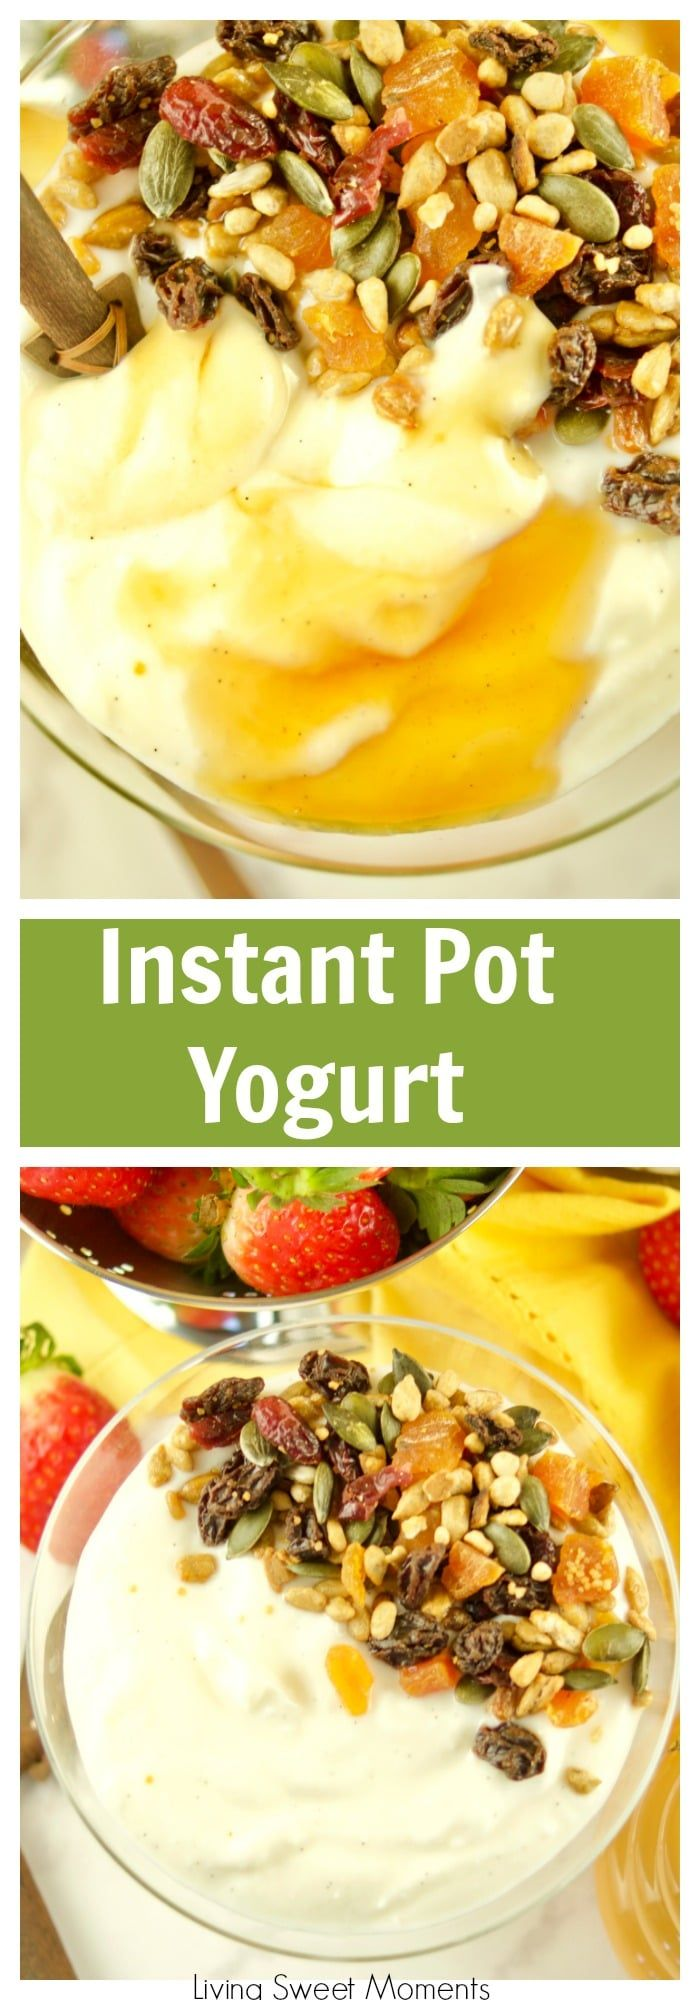 This super Easy Instant Pot Yogurt recipe requires only 1 step and 4 ingredients. No boiling, straining or checking temperature required. Make the perfect thick and creamy yogurt for breakfast and top with honey, fruit, and granola. For more instant pot recipes visit livingsweetmoments.com  via @Livingsmoments